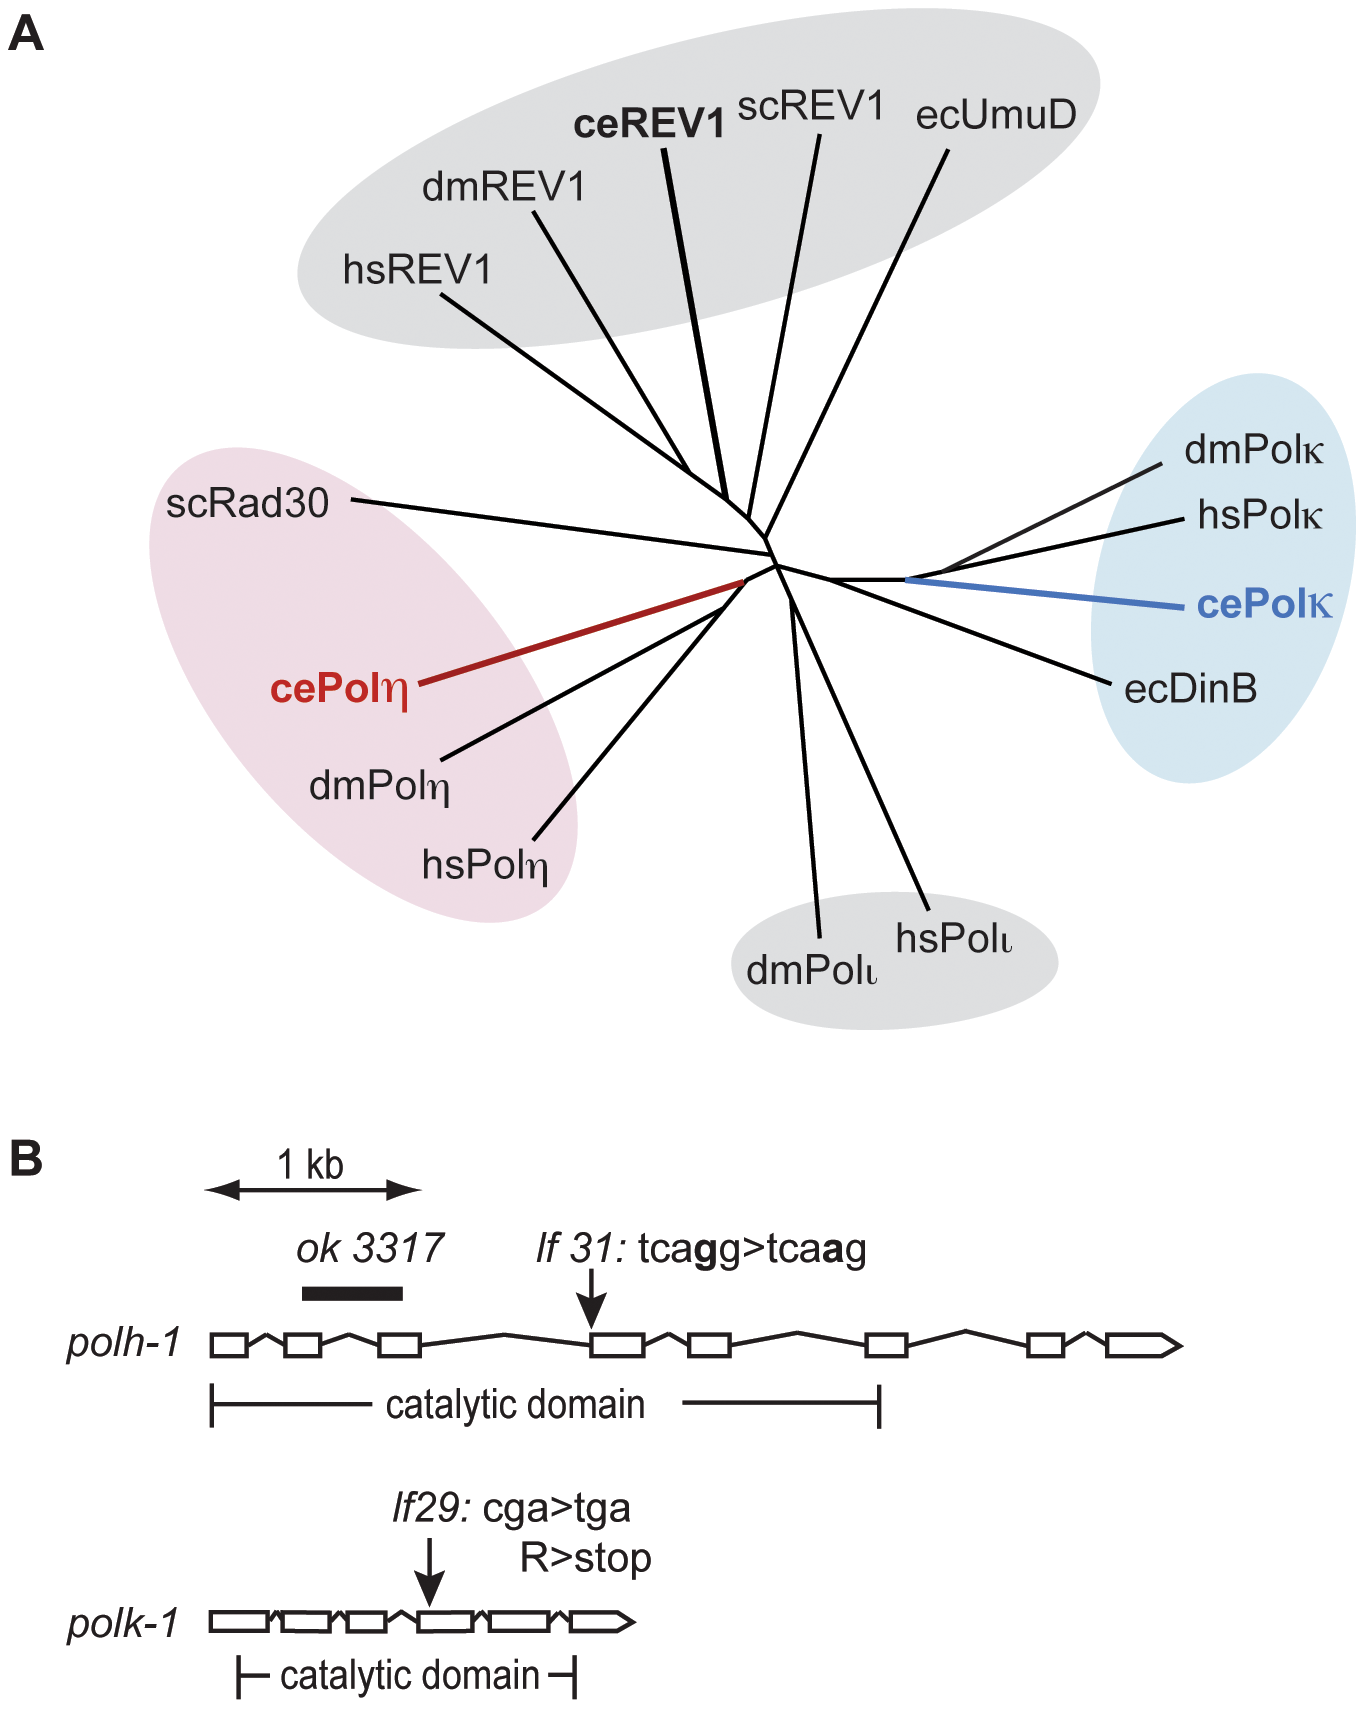 Y-family polymerases POLH-1 and POLK-1 of <i>C. elegans</i>.